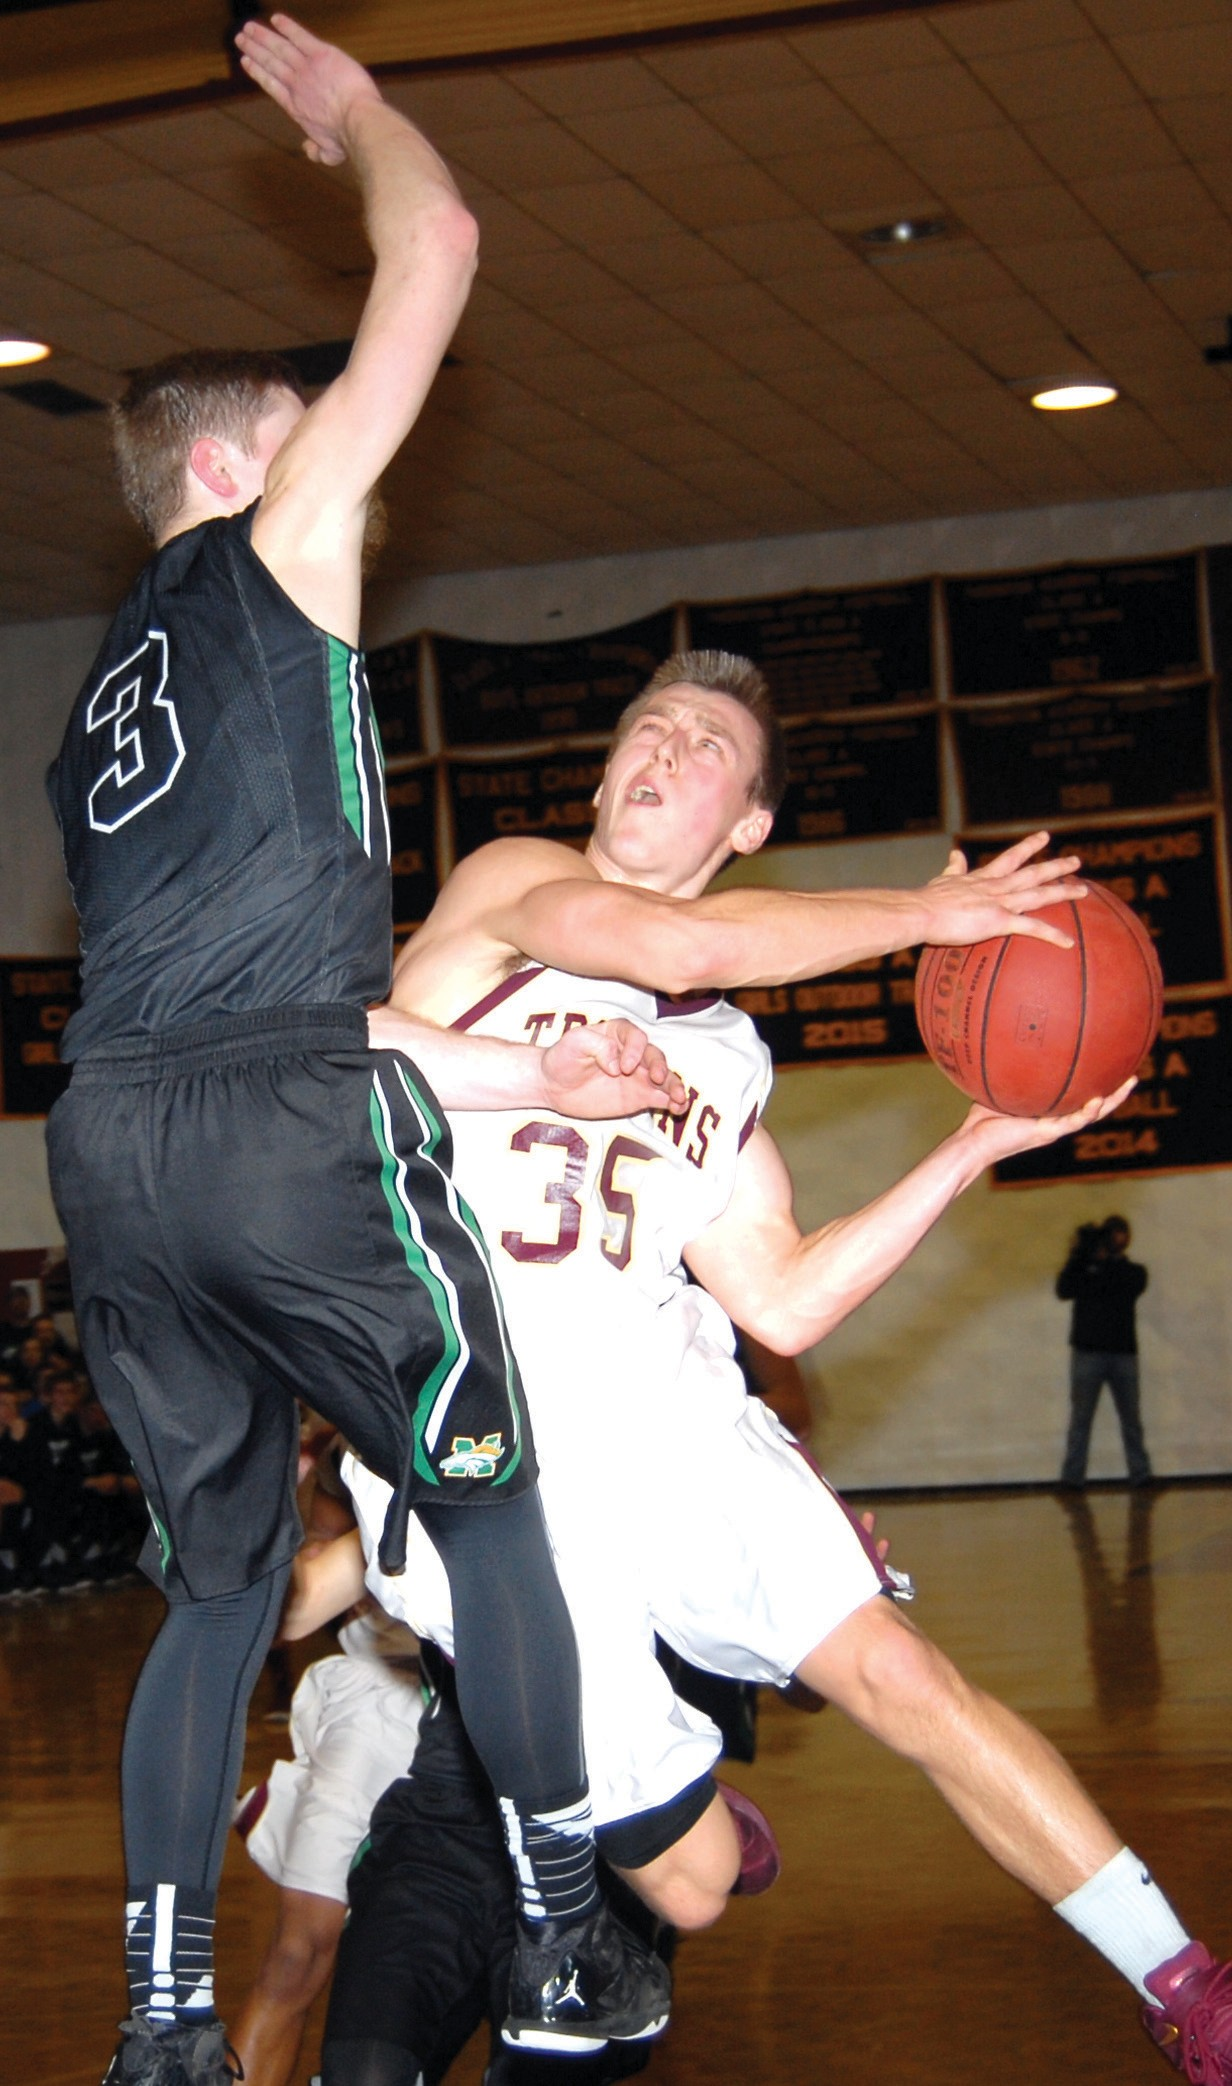 PAT MCDONALD/Journal Tribune Thornton Academy point guard Jack Tilley goes up for a shot as Massabesic's Dan Amabile defends during Thursday night's game in Saco. TA picked up a hard-fought 63-61 win.